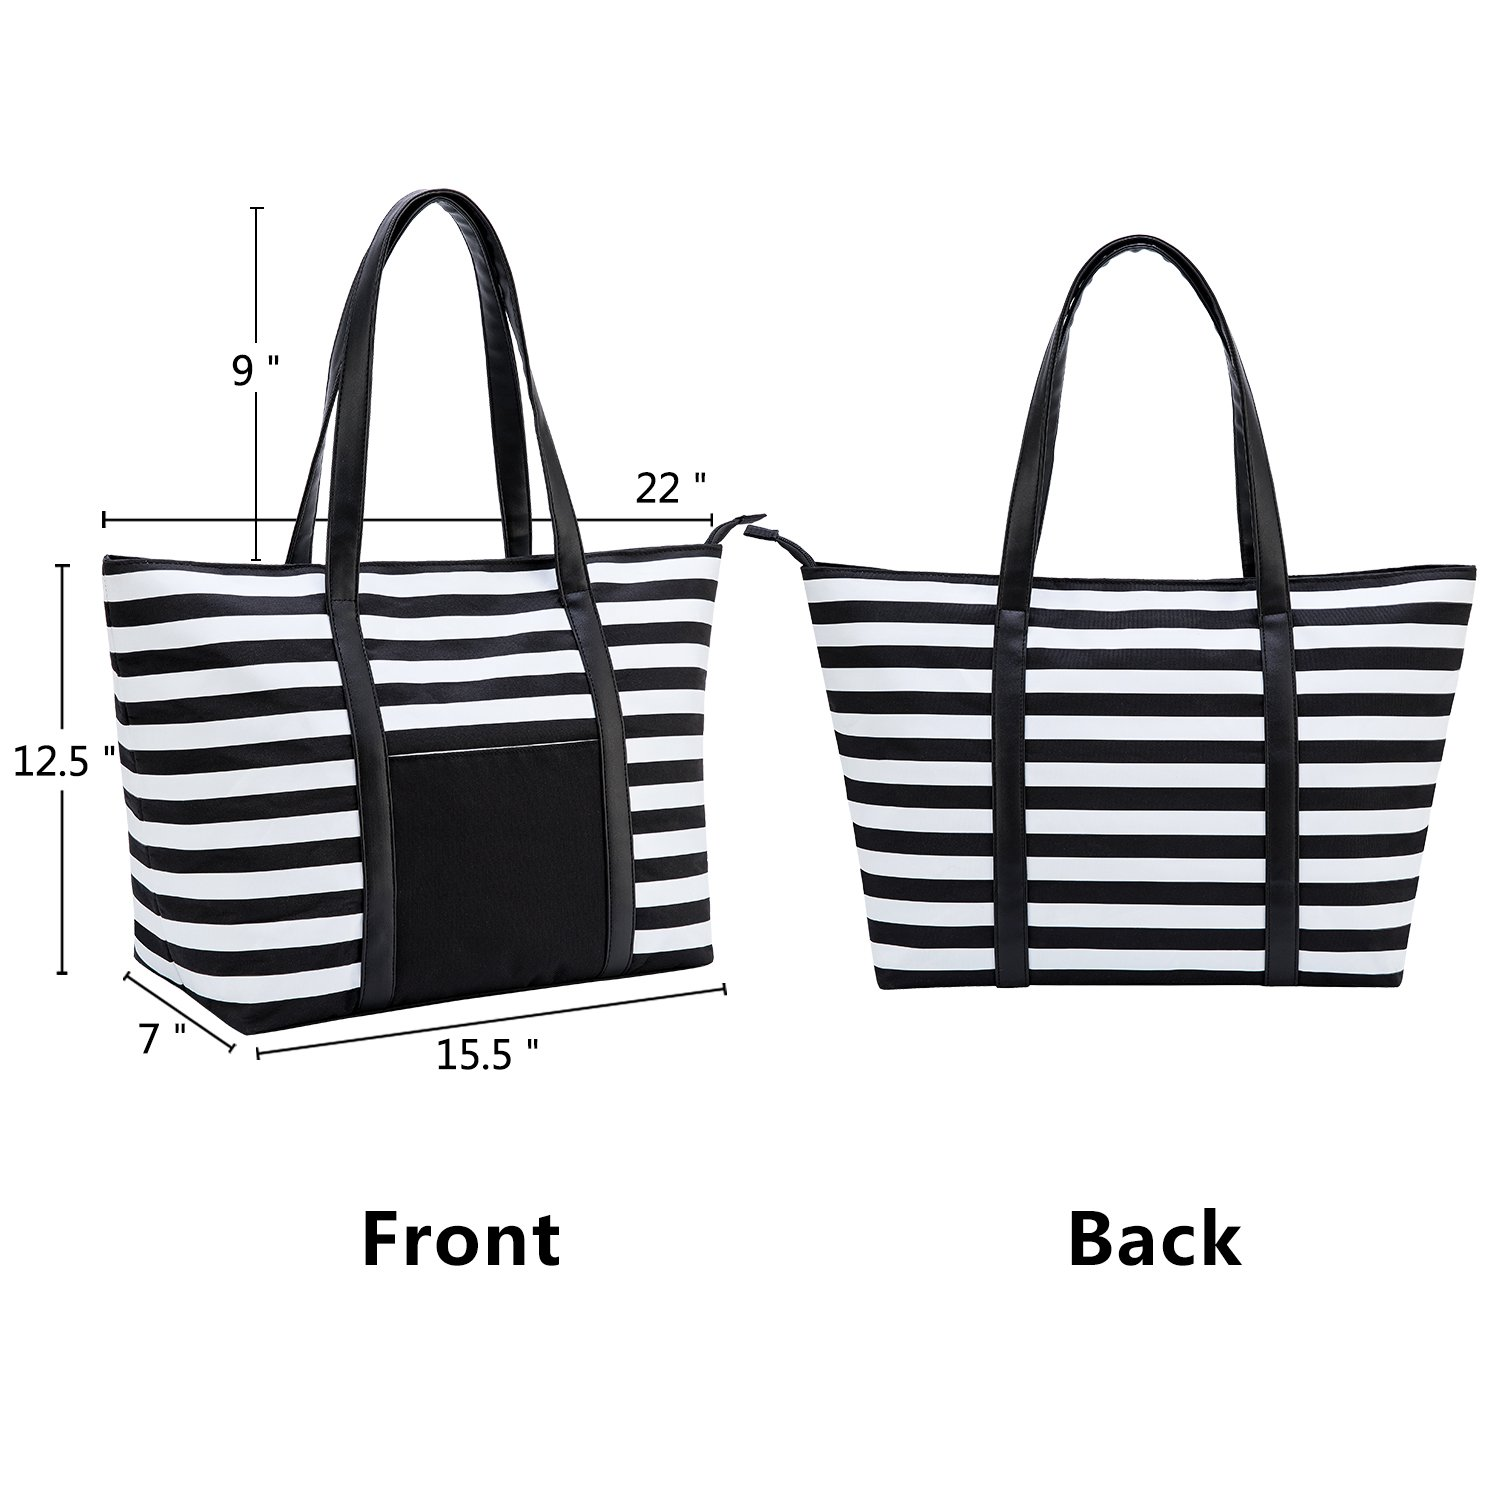 7fa5d3a480 Cieovo Large Beach Bag For Women Waterproof Oxford Tote Bags With ...